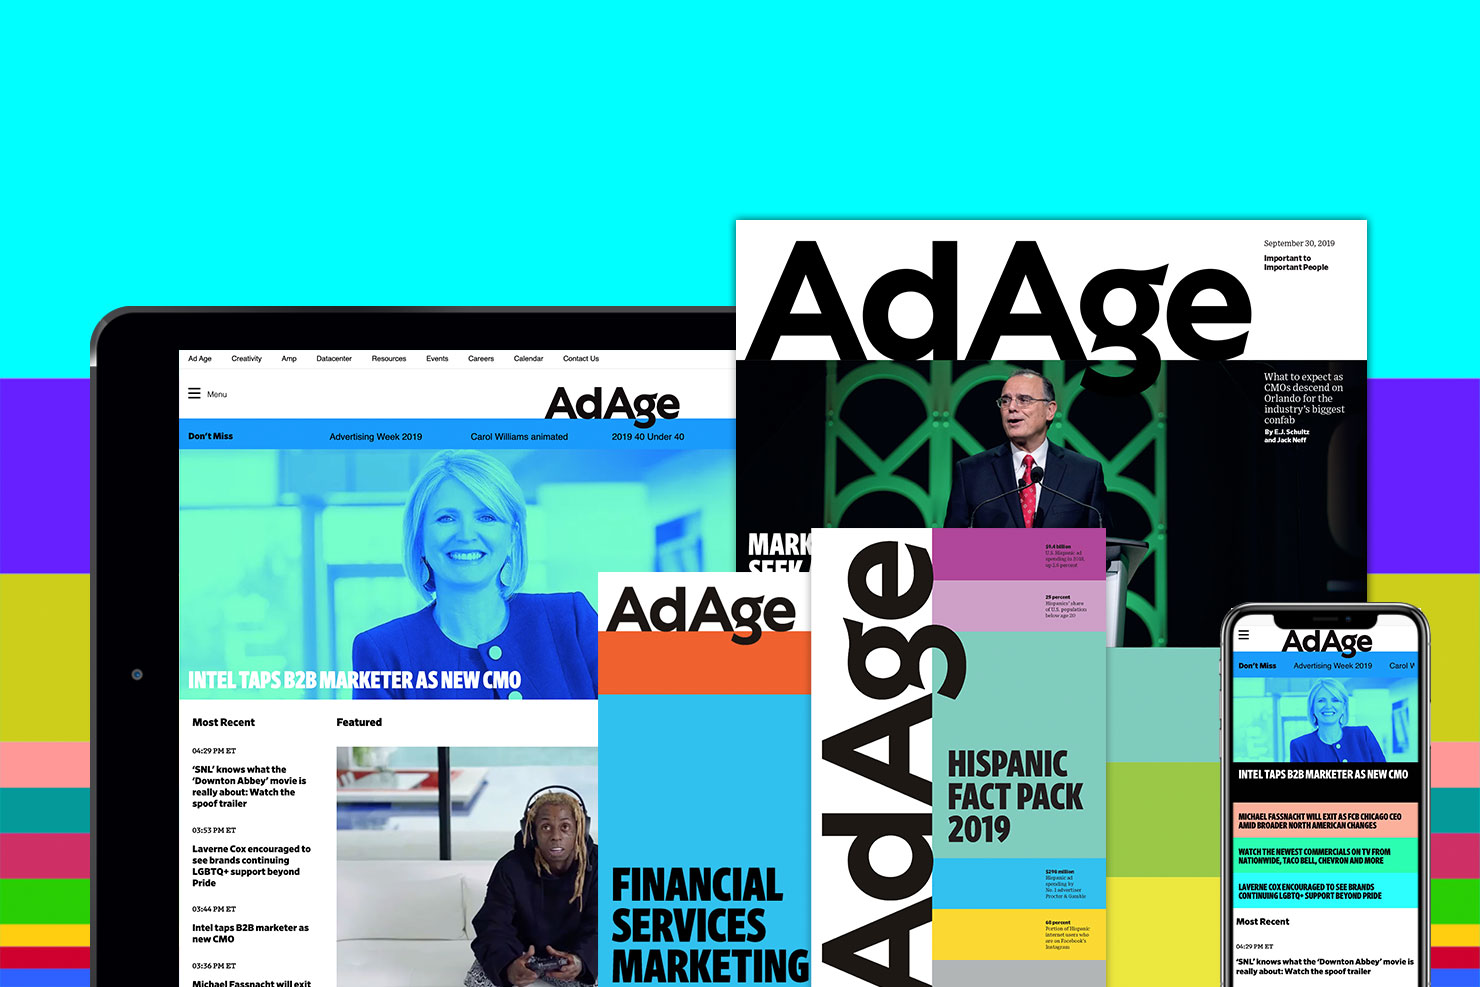 A thank you and an update from Ad Age Editor Brian Braiker